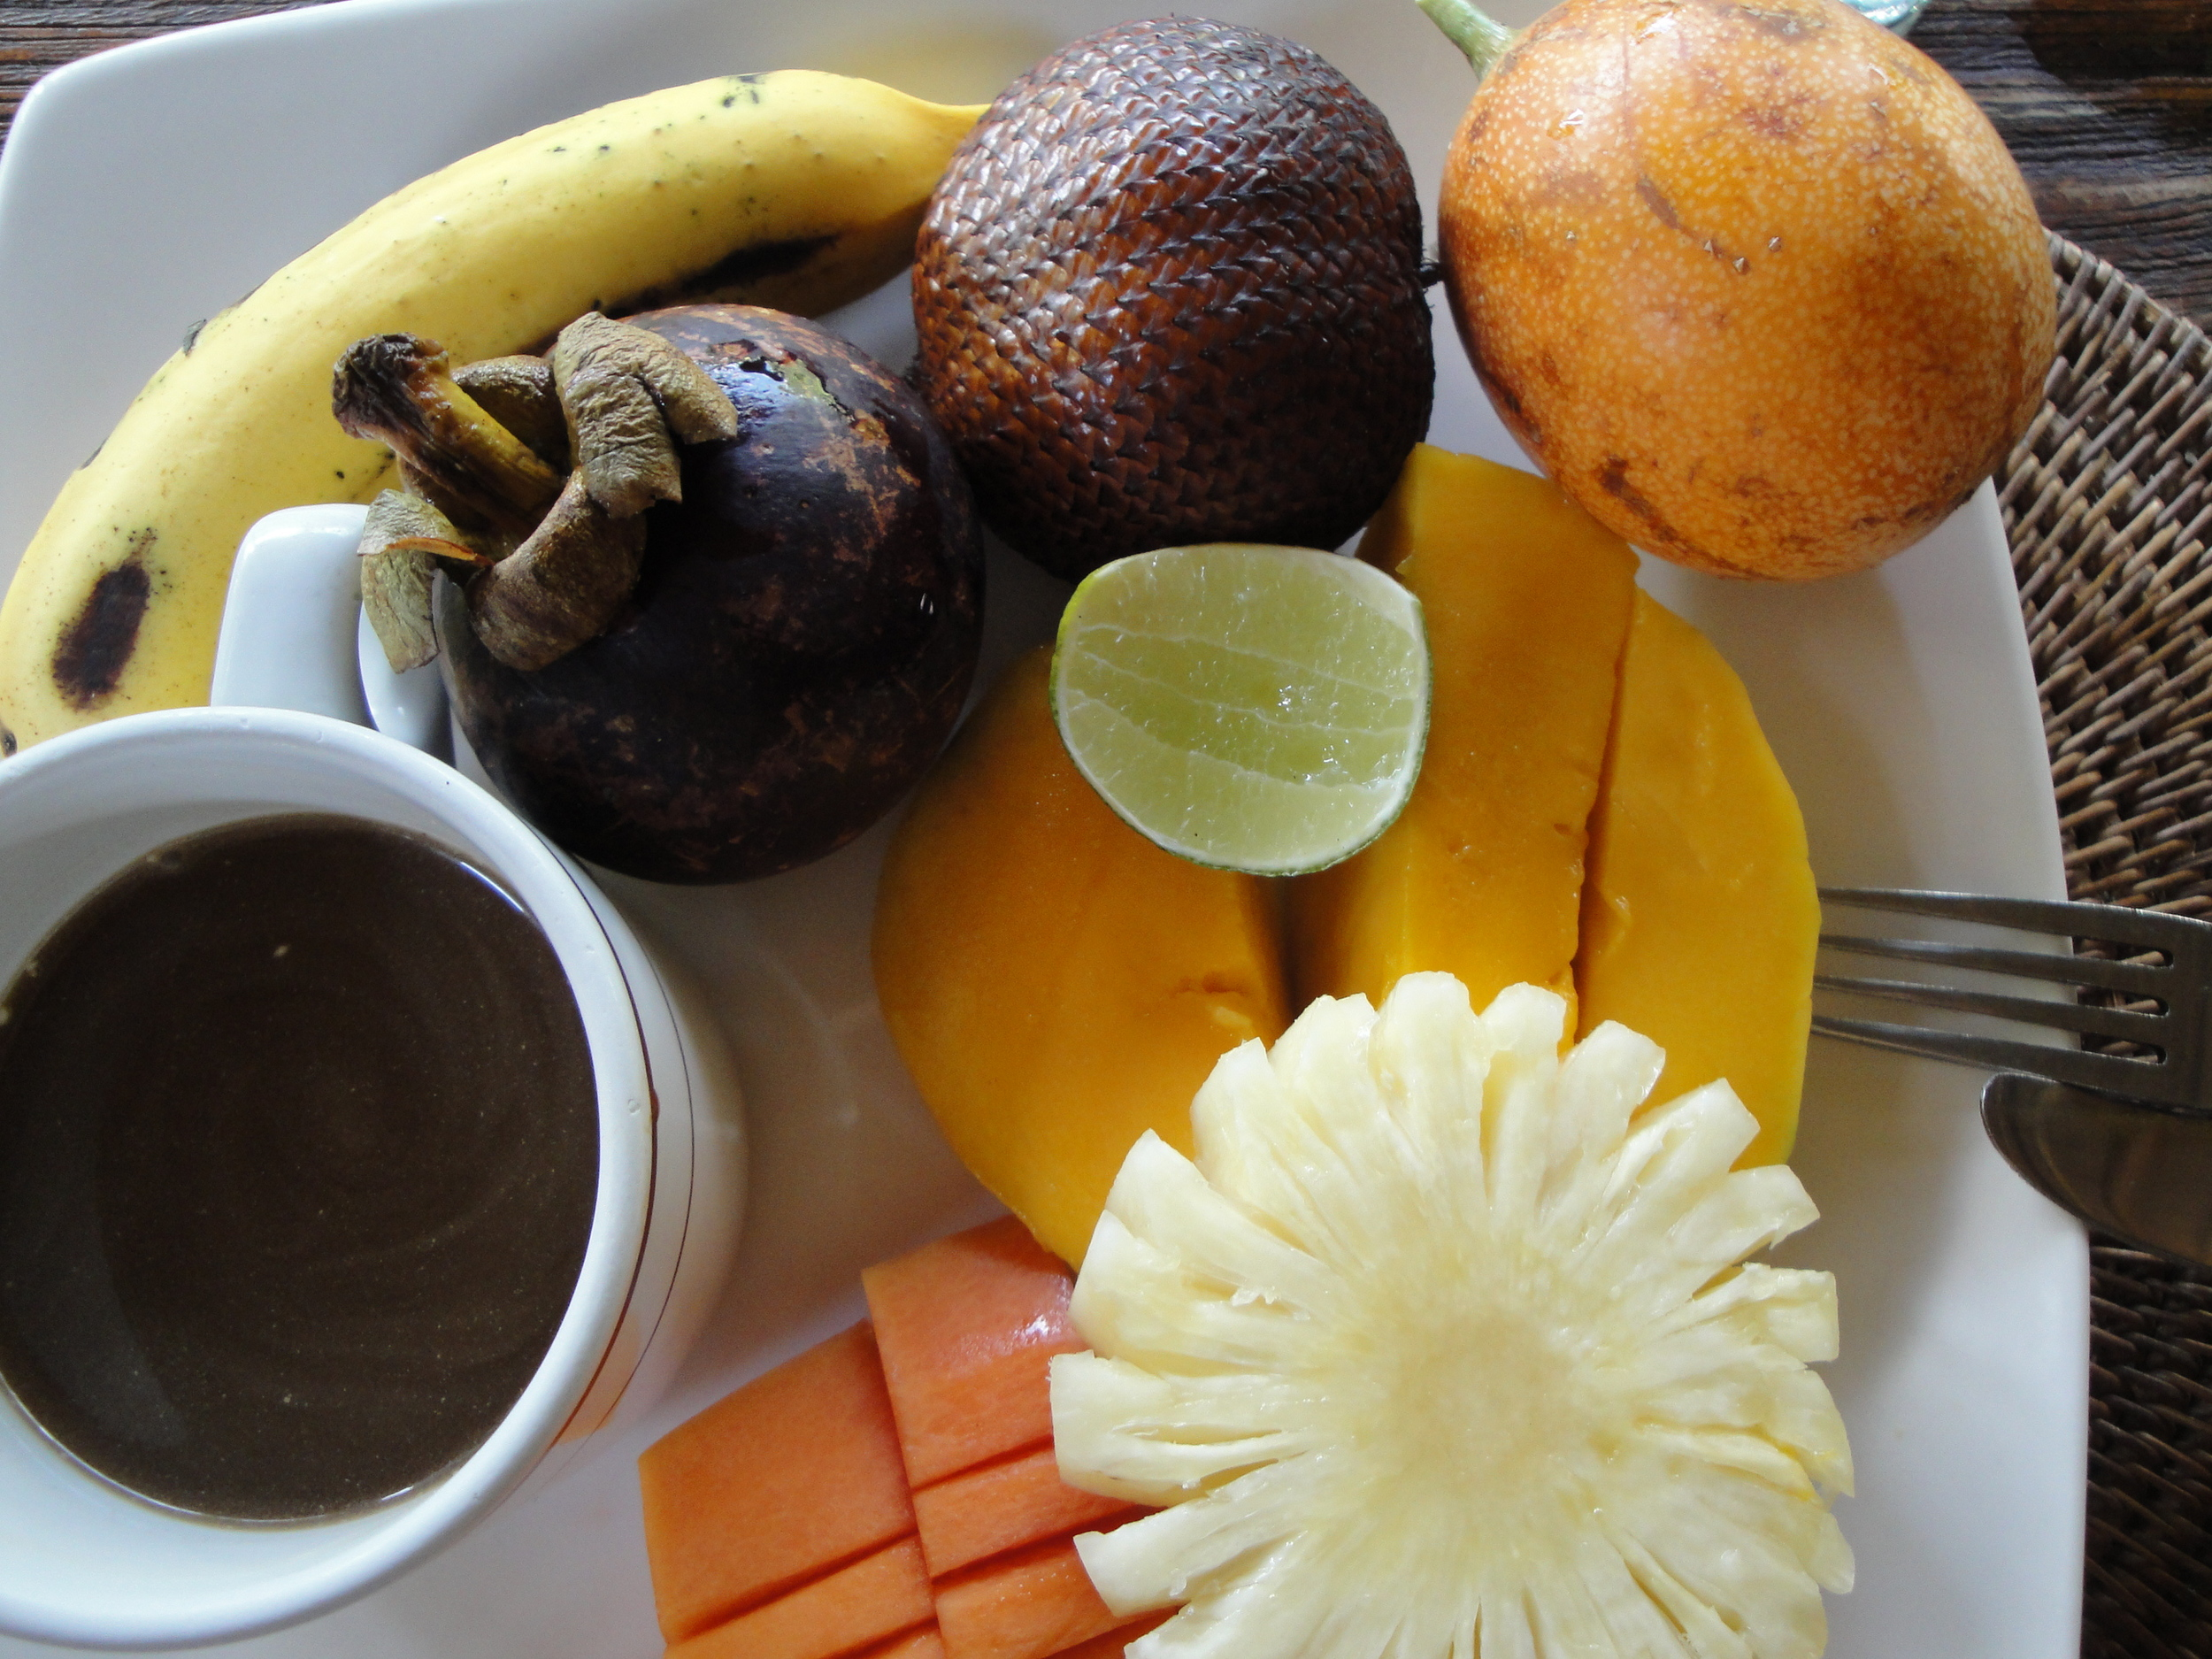 Tropical local fruit and Bali coffee with coconut milk for breakfast.